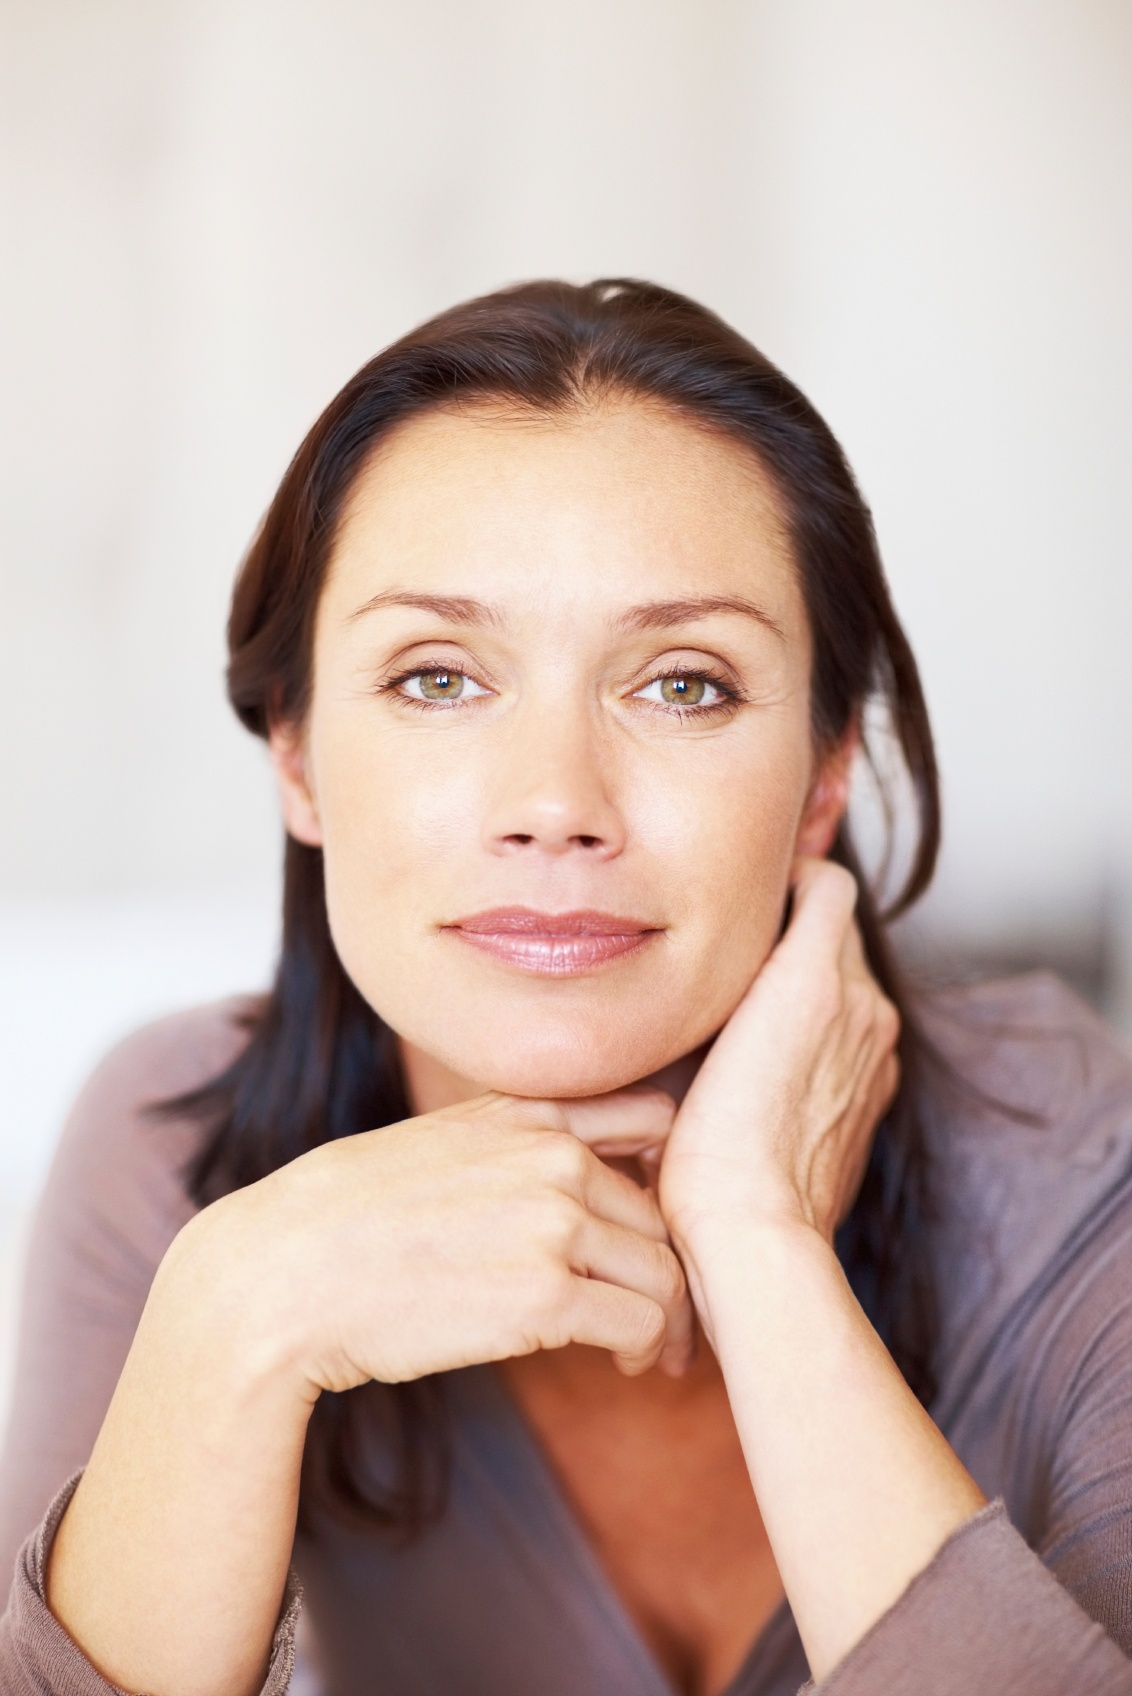 Guide-a-treatment-with-fillers-or-botox.jpg